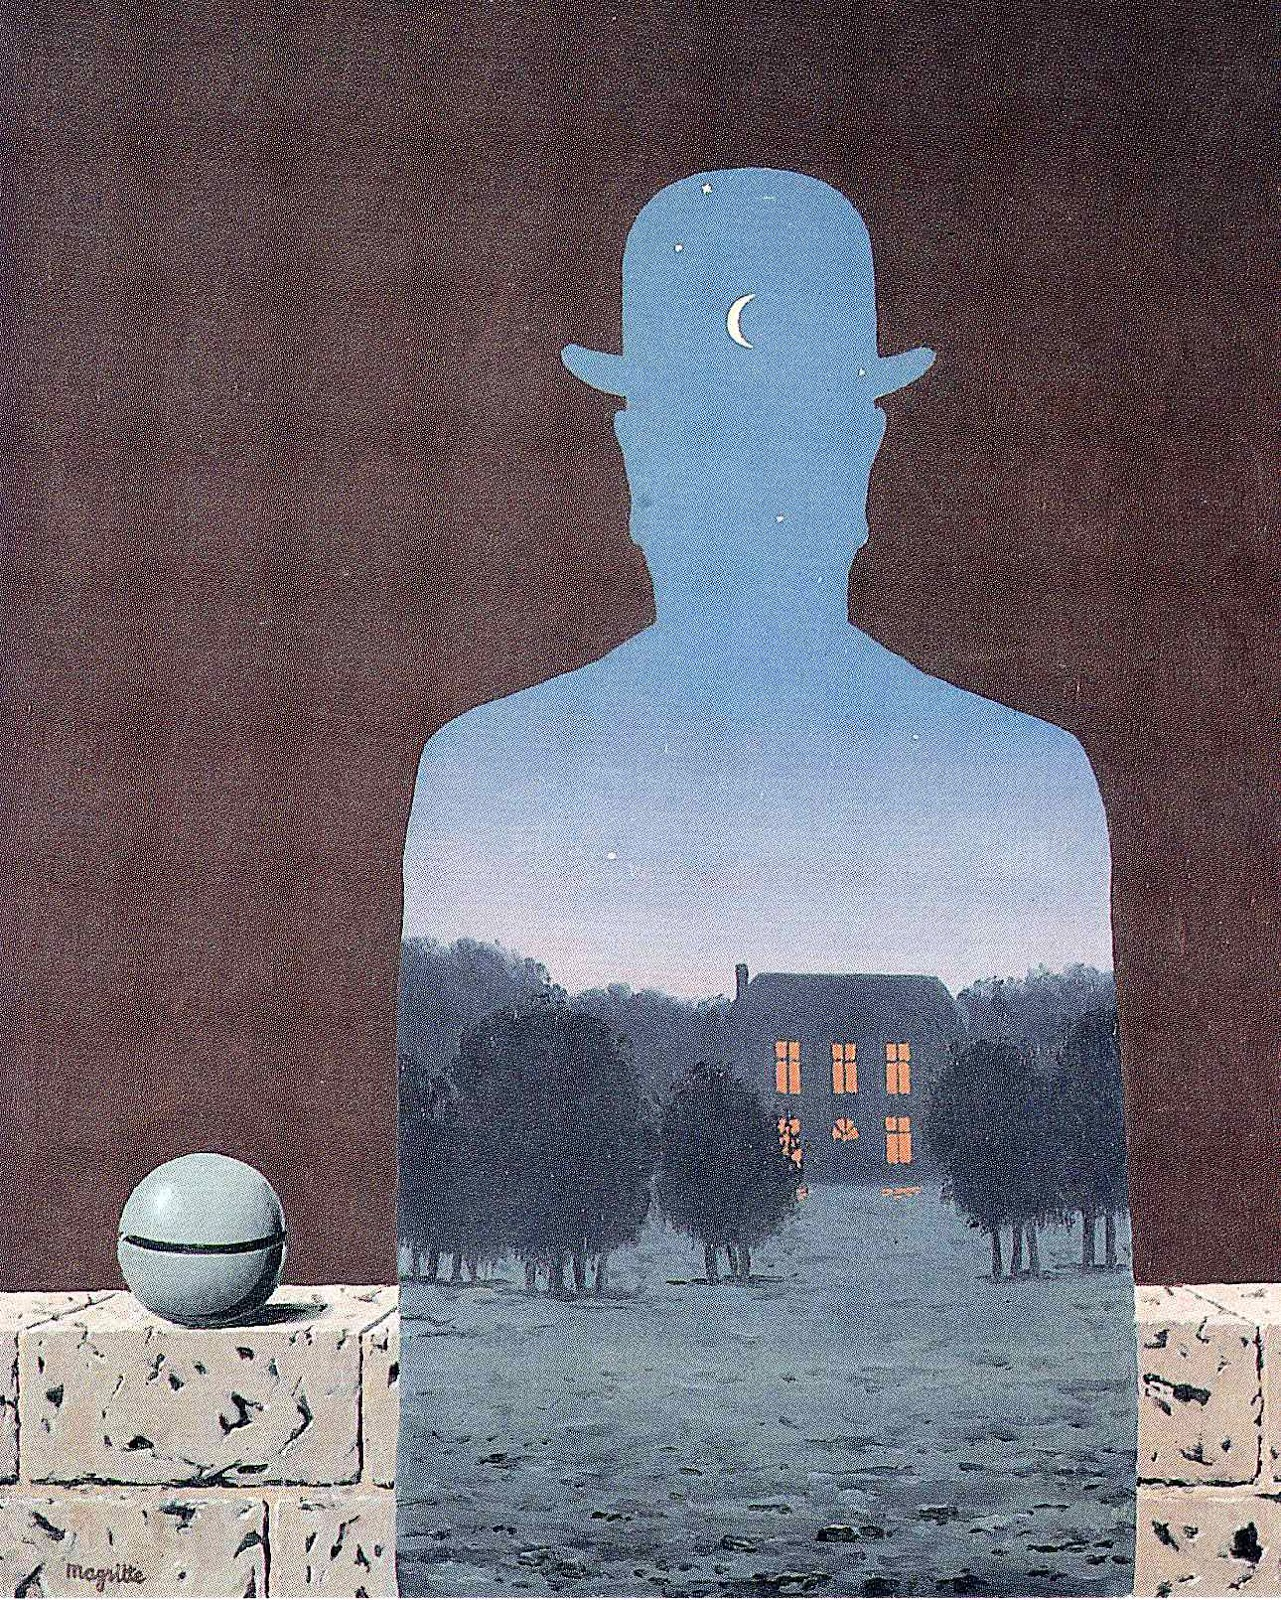 The Happy Donor by Magritte